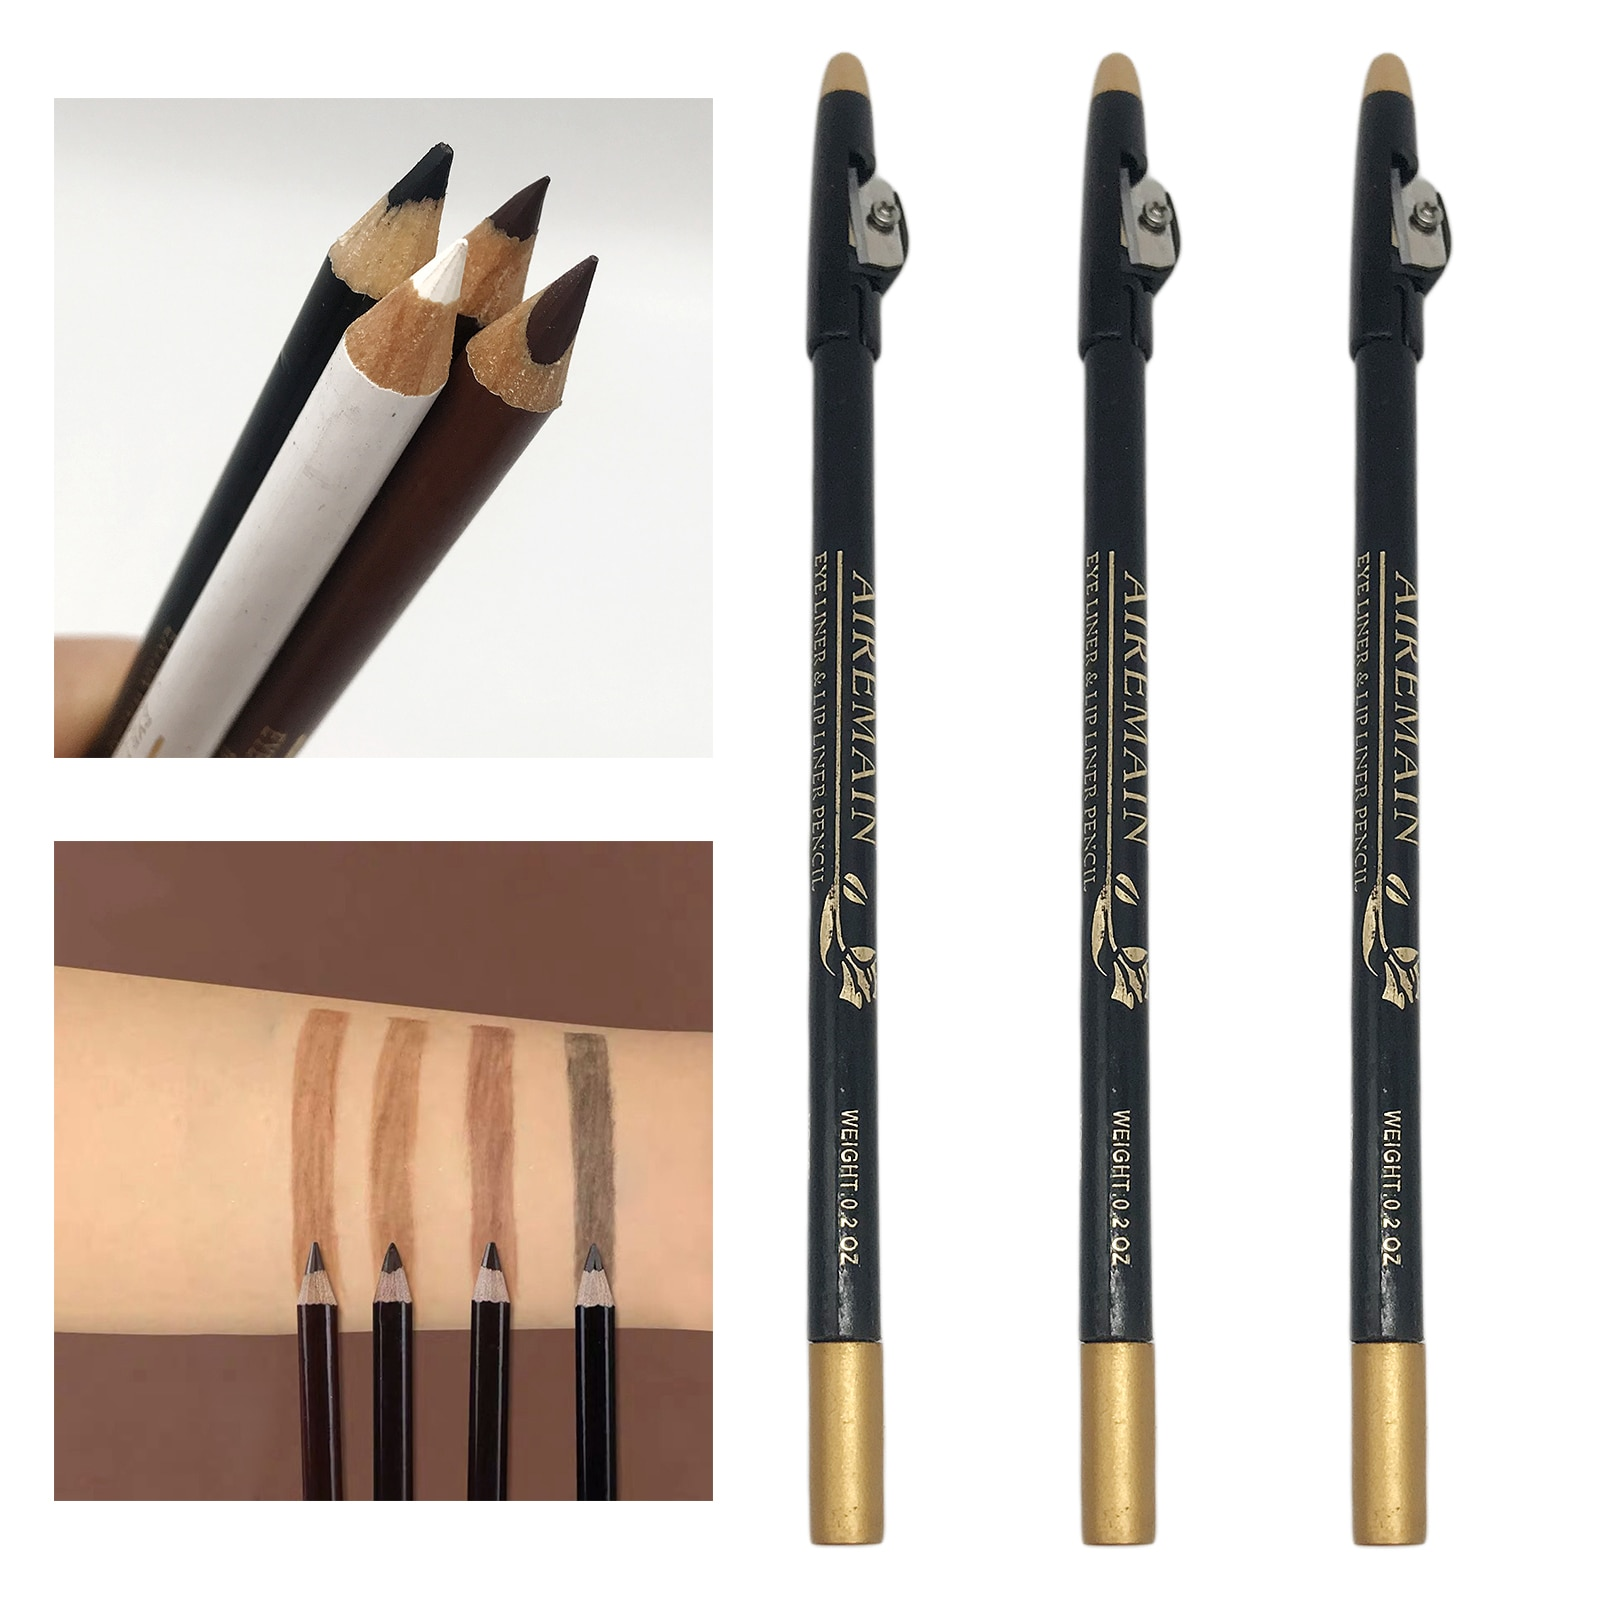 3x Barber Magic Pencil Tool for Making Distinctive Beard Mustache Arches Shaver - perfect for drawing a natural hairline